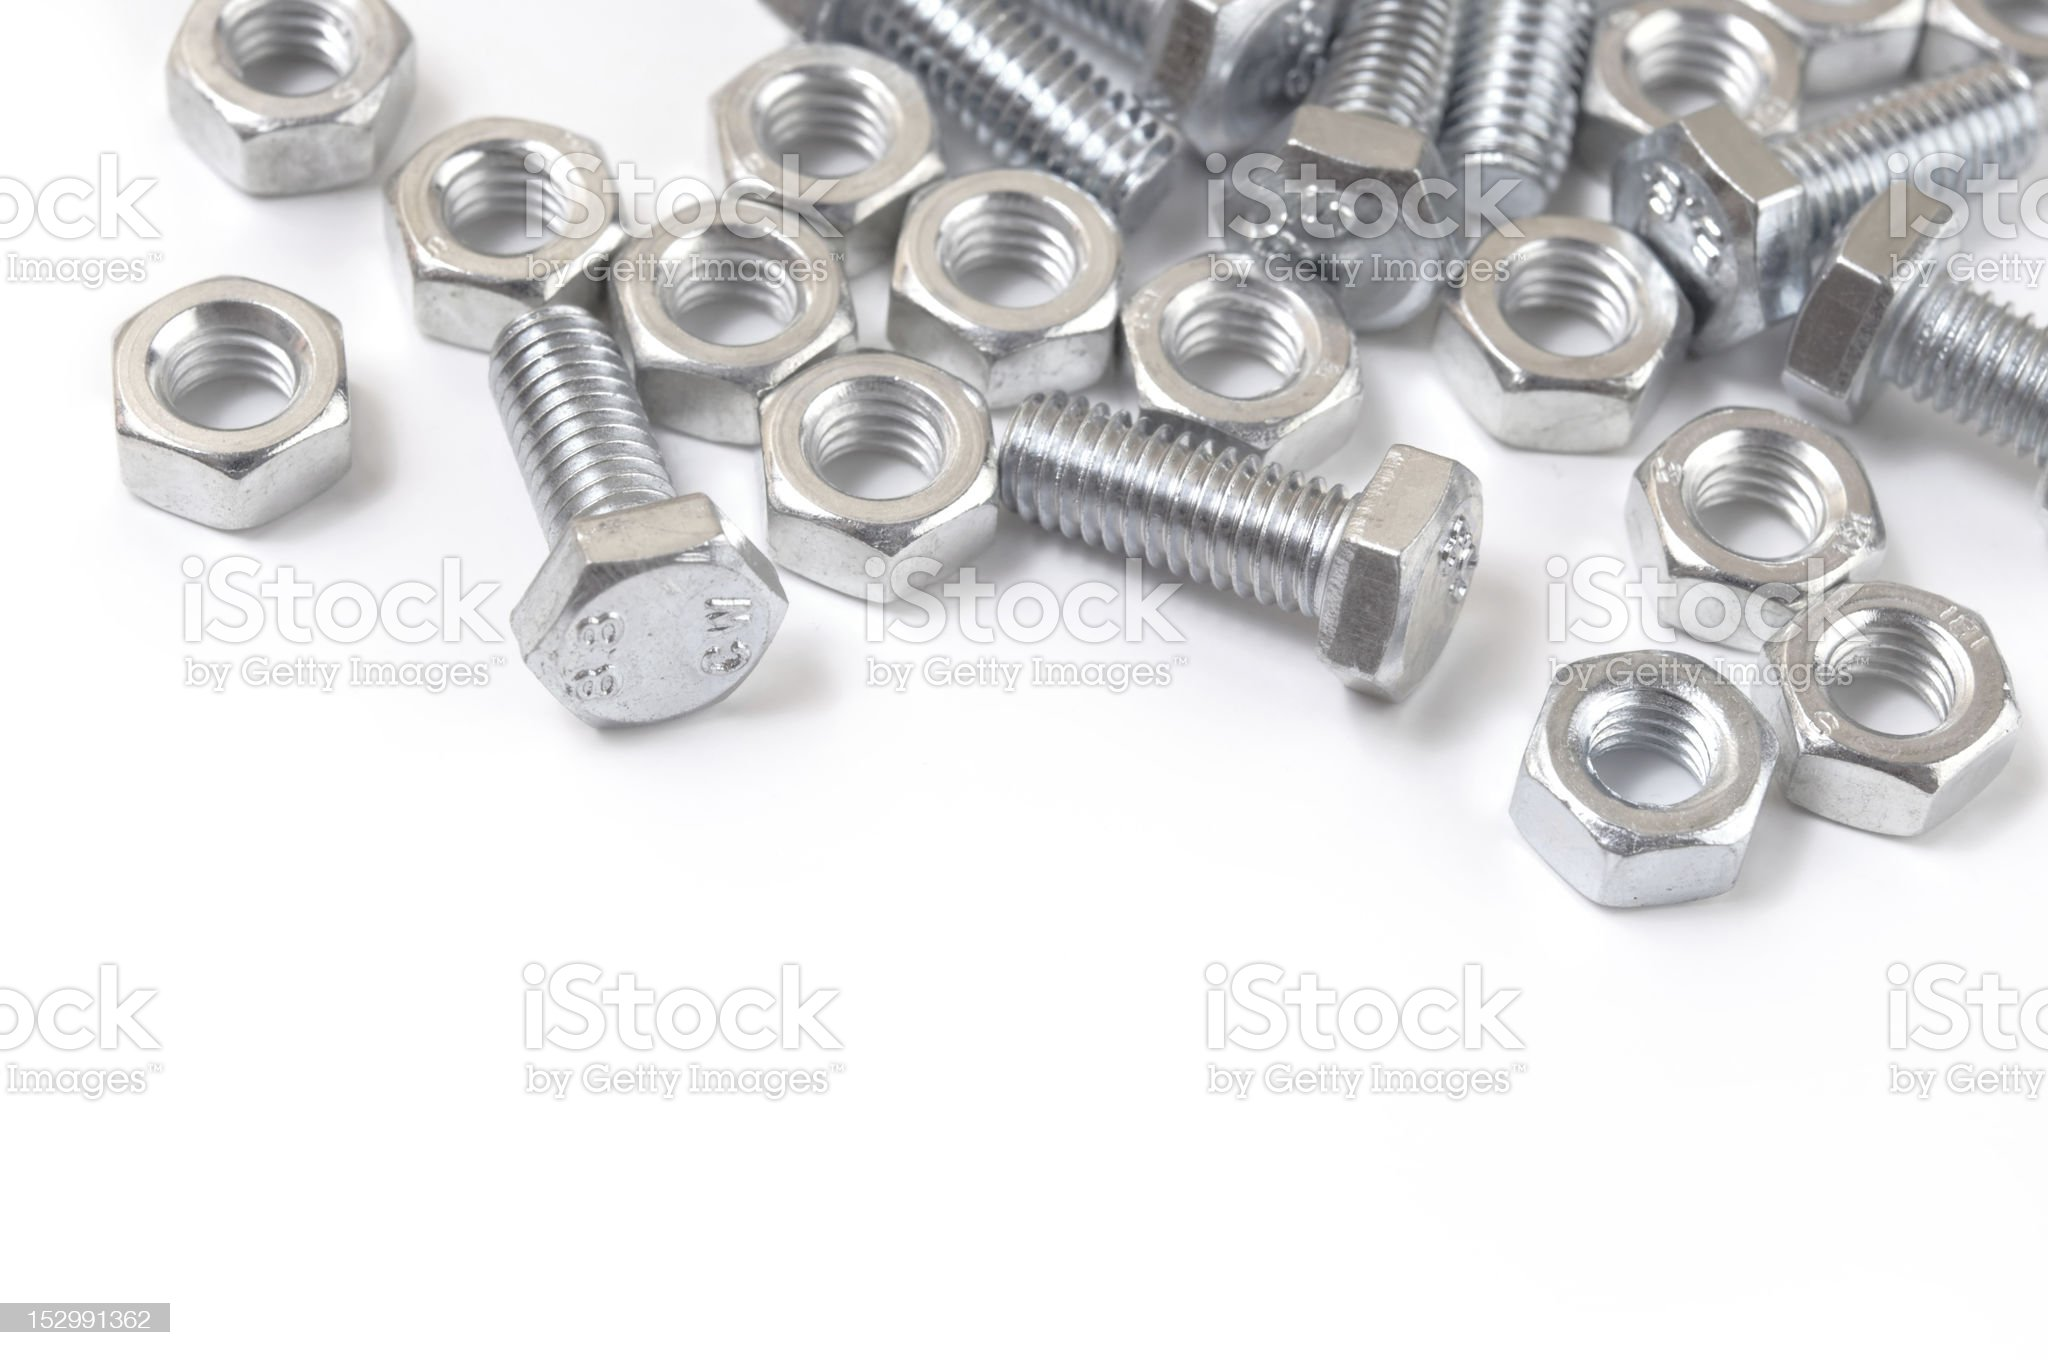 Close-up of silver nuts and bolts on a white surface royalty-free stock photo